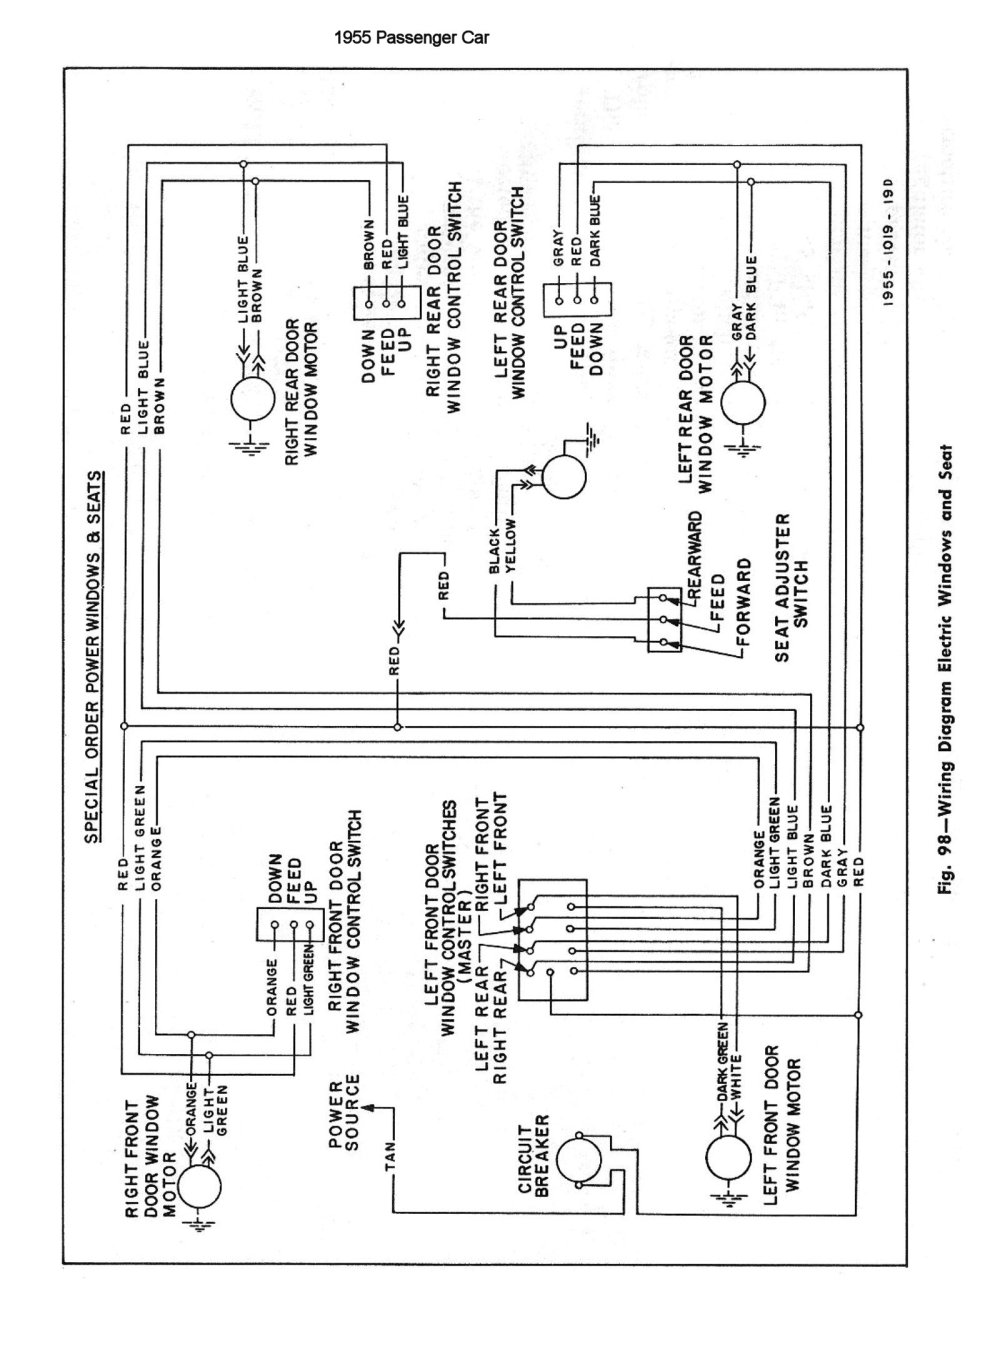 medium resolution of 1955 international pickup wiring diagram wiring diagram bass pickup wiring diagrams 1954 international pickup wiring diagram